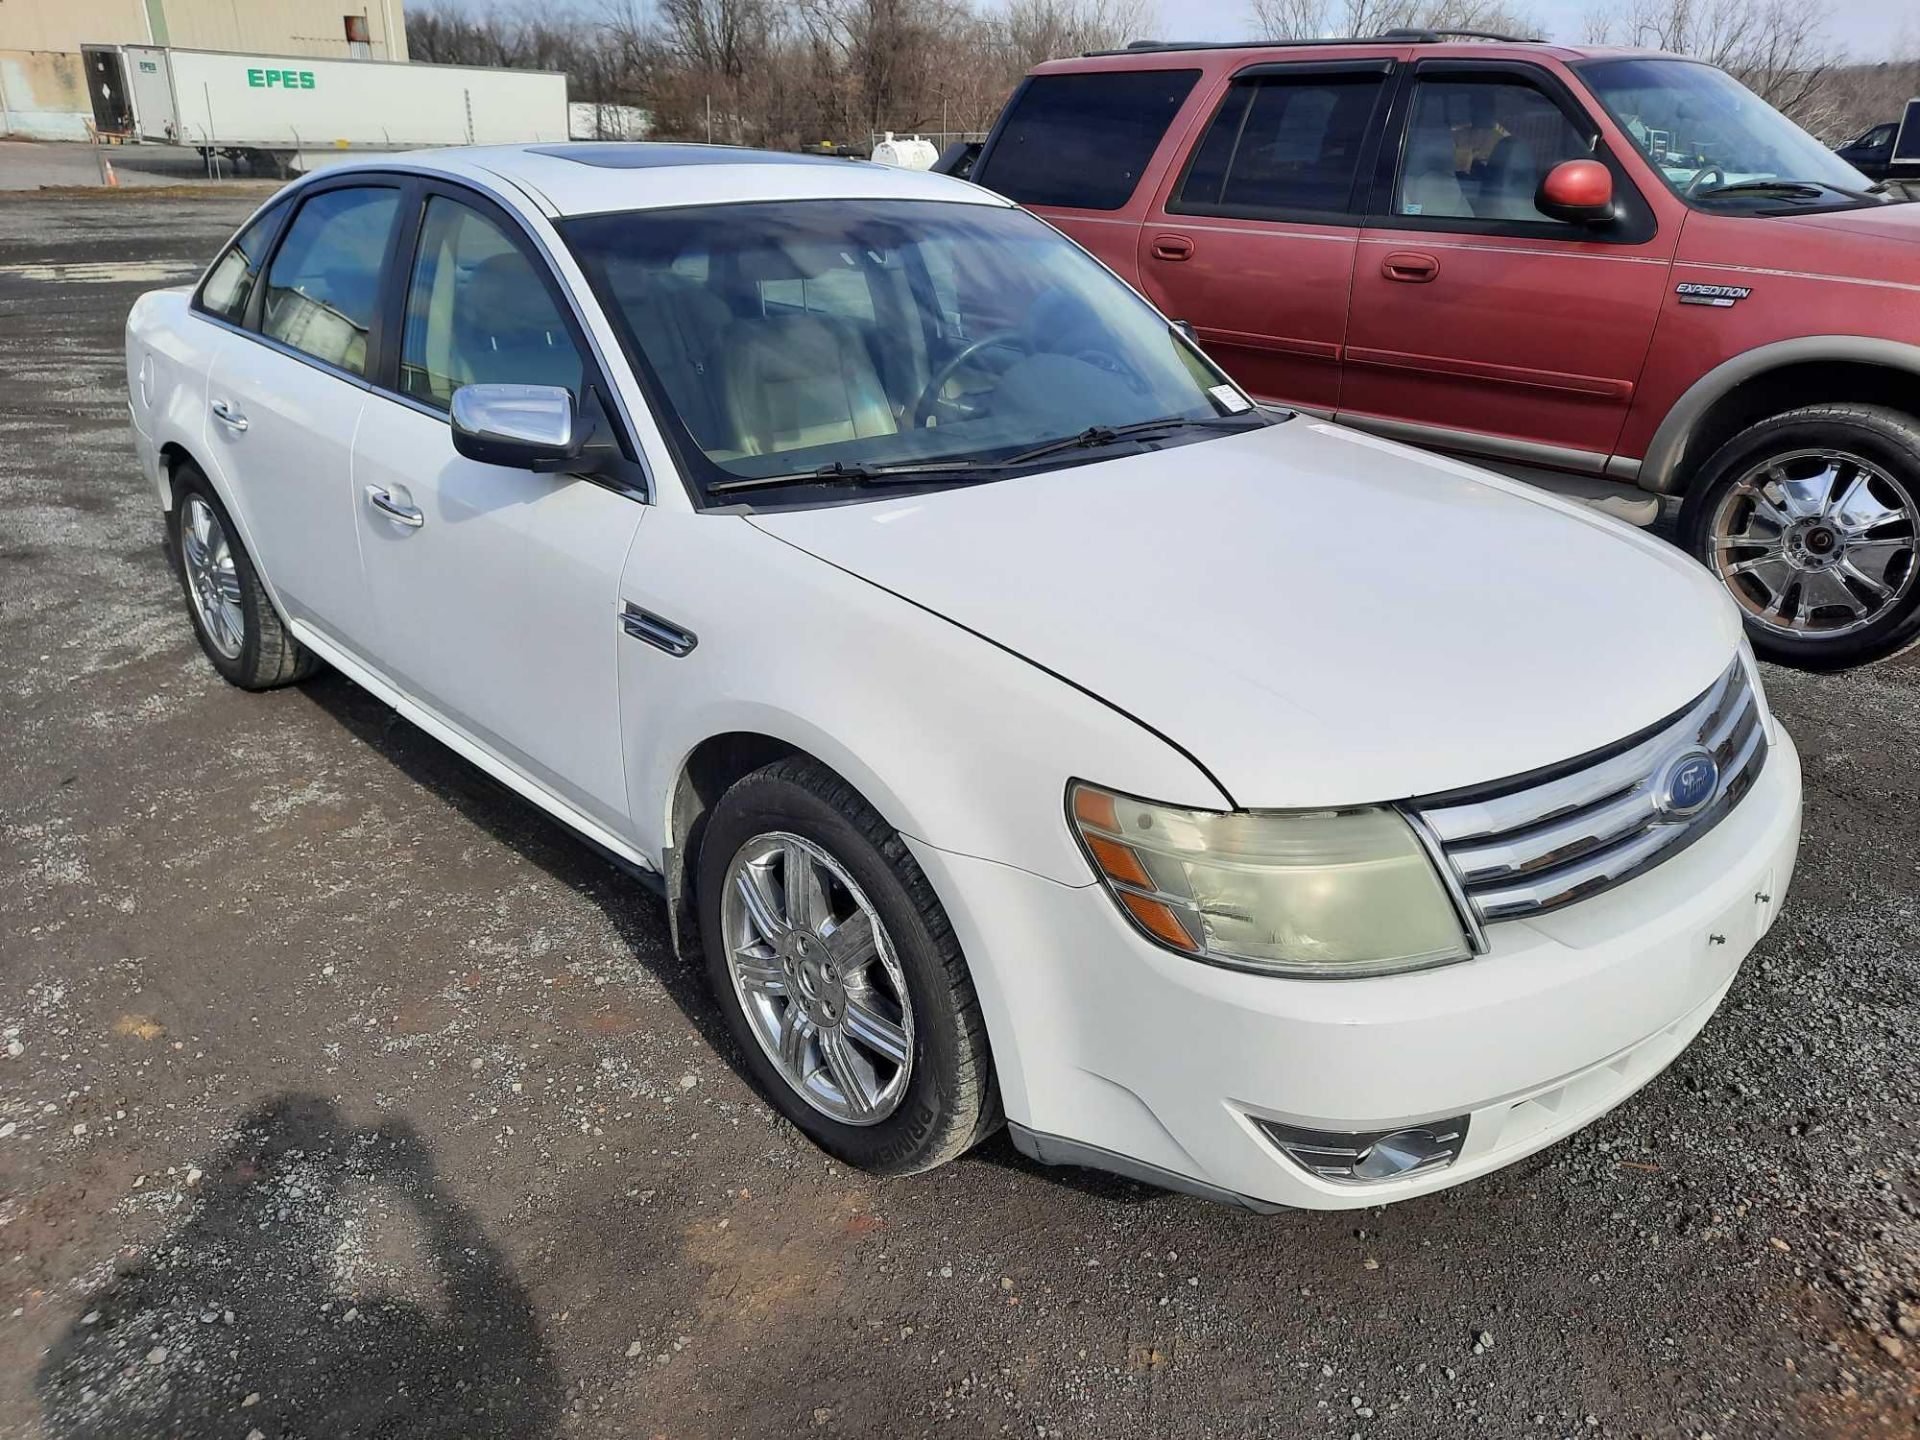 2008 FORD TAURUS LIMITED - Image 4 of 18